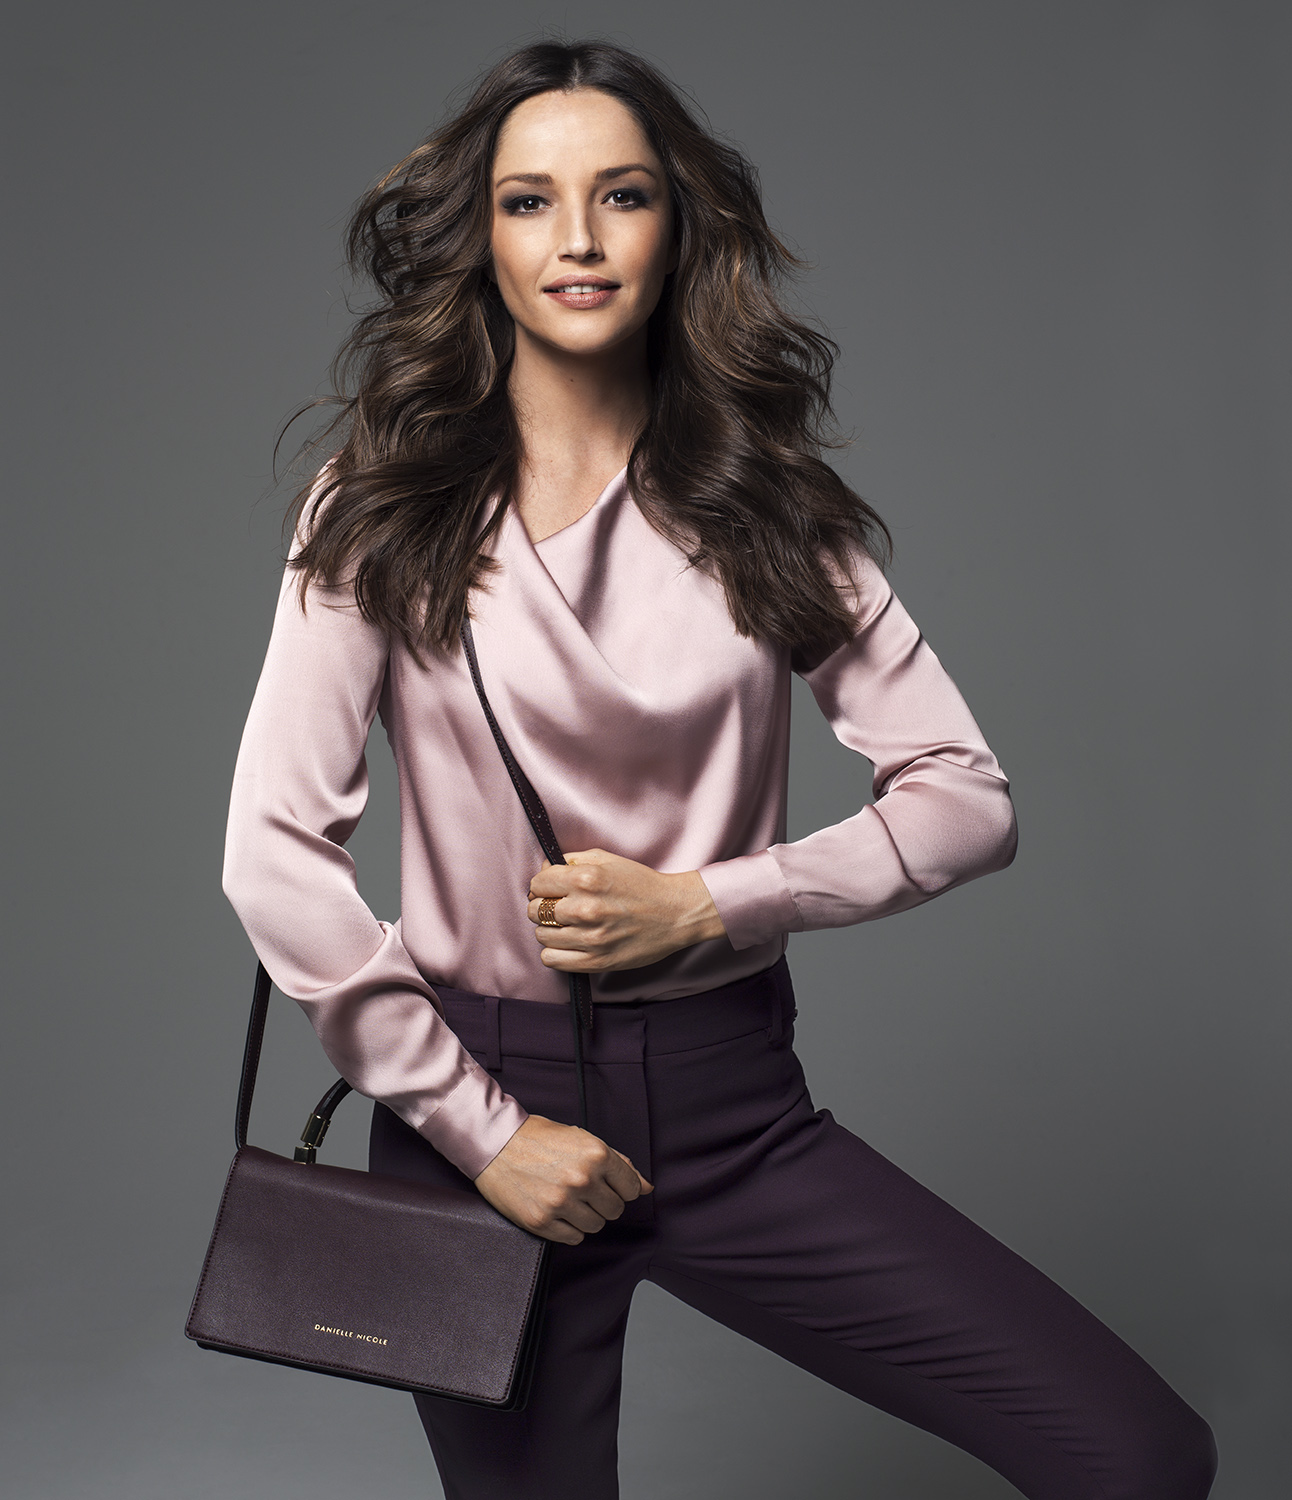 Model wearing pink blouse and eggplant pants